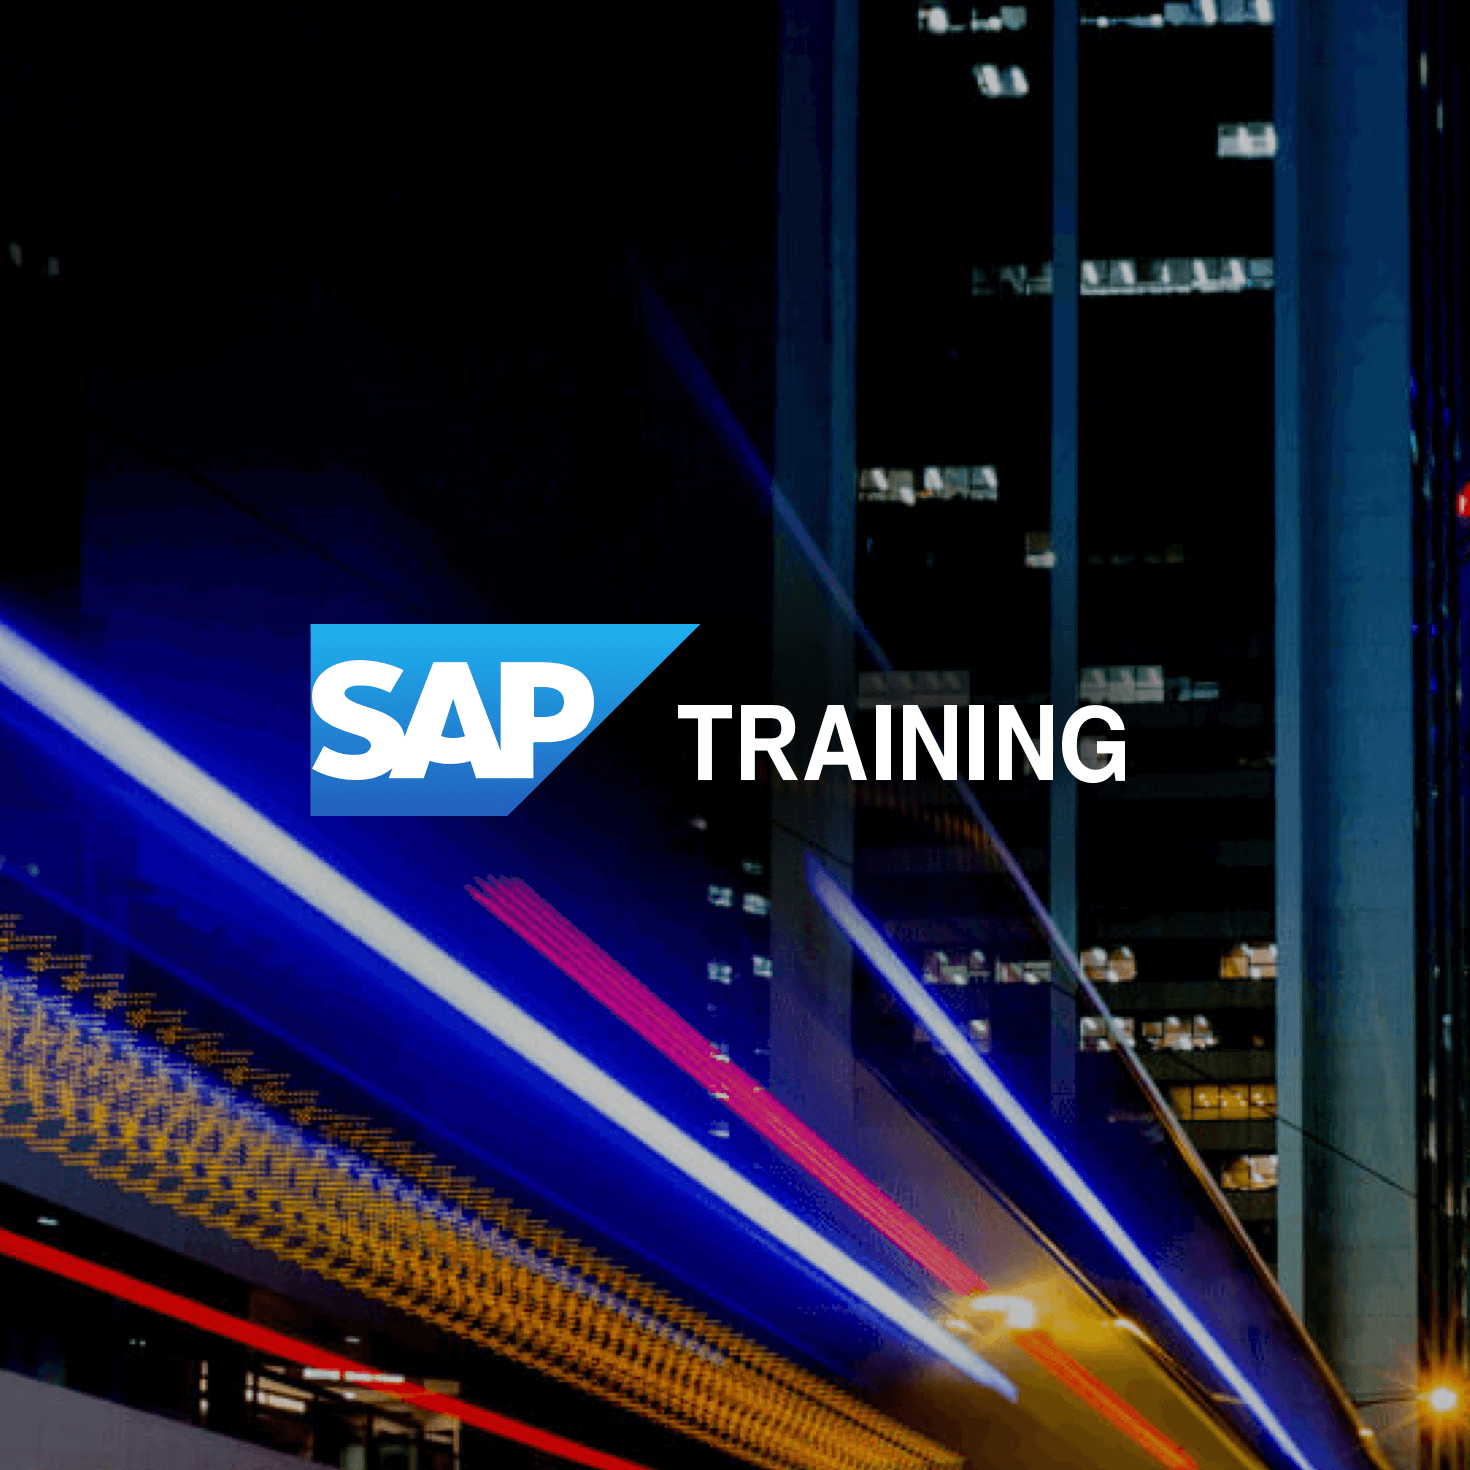 SAP - The logo, with a fast moving train in background